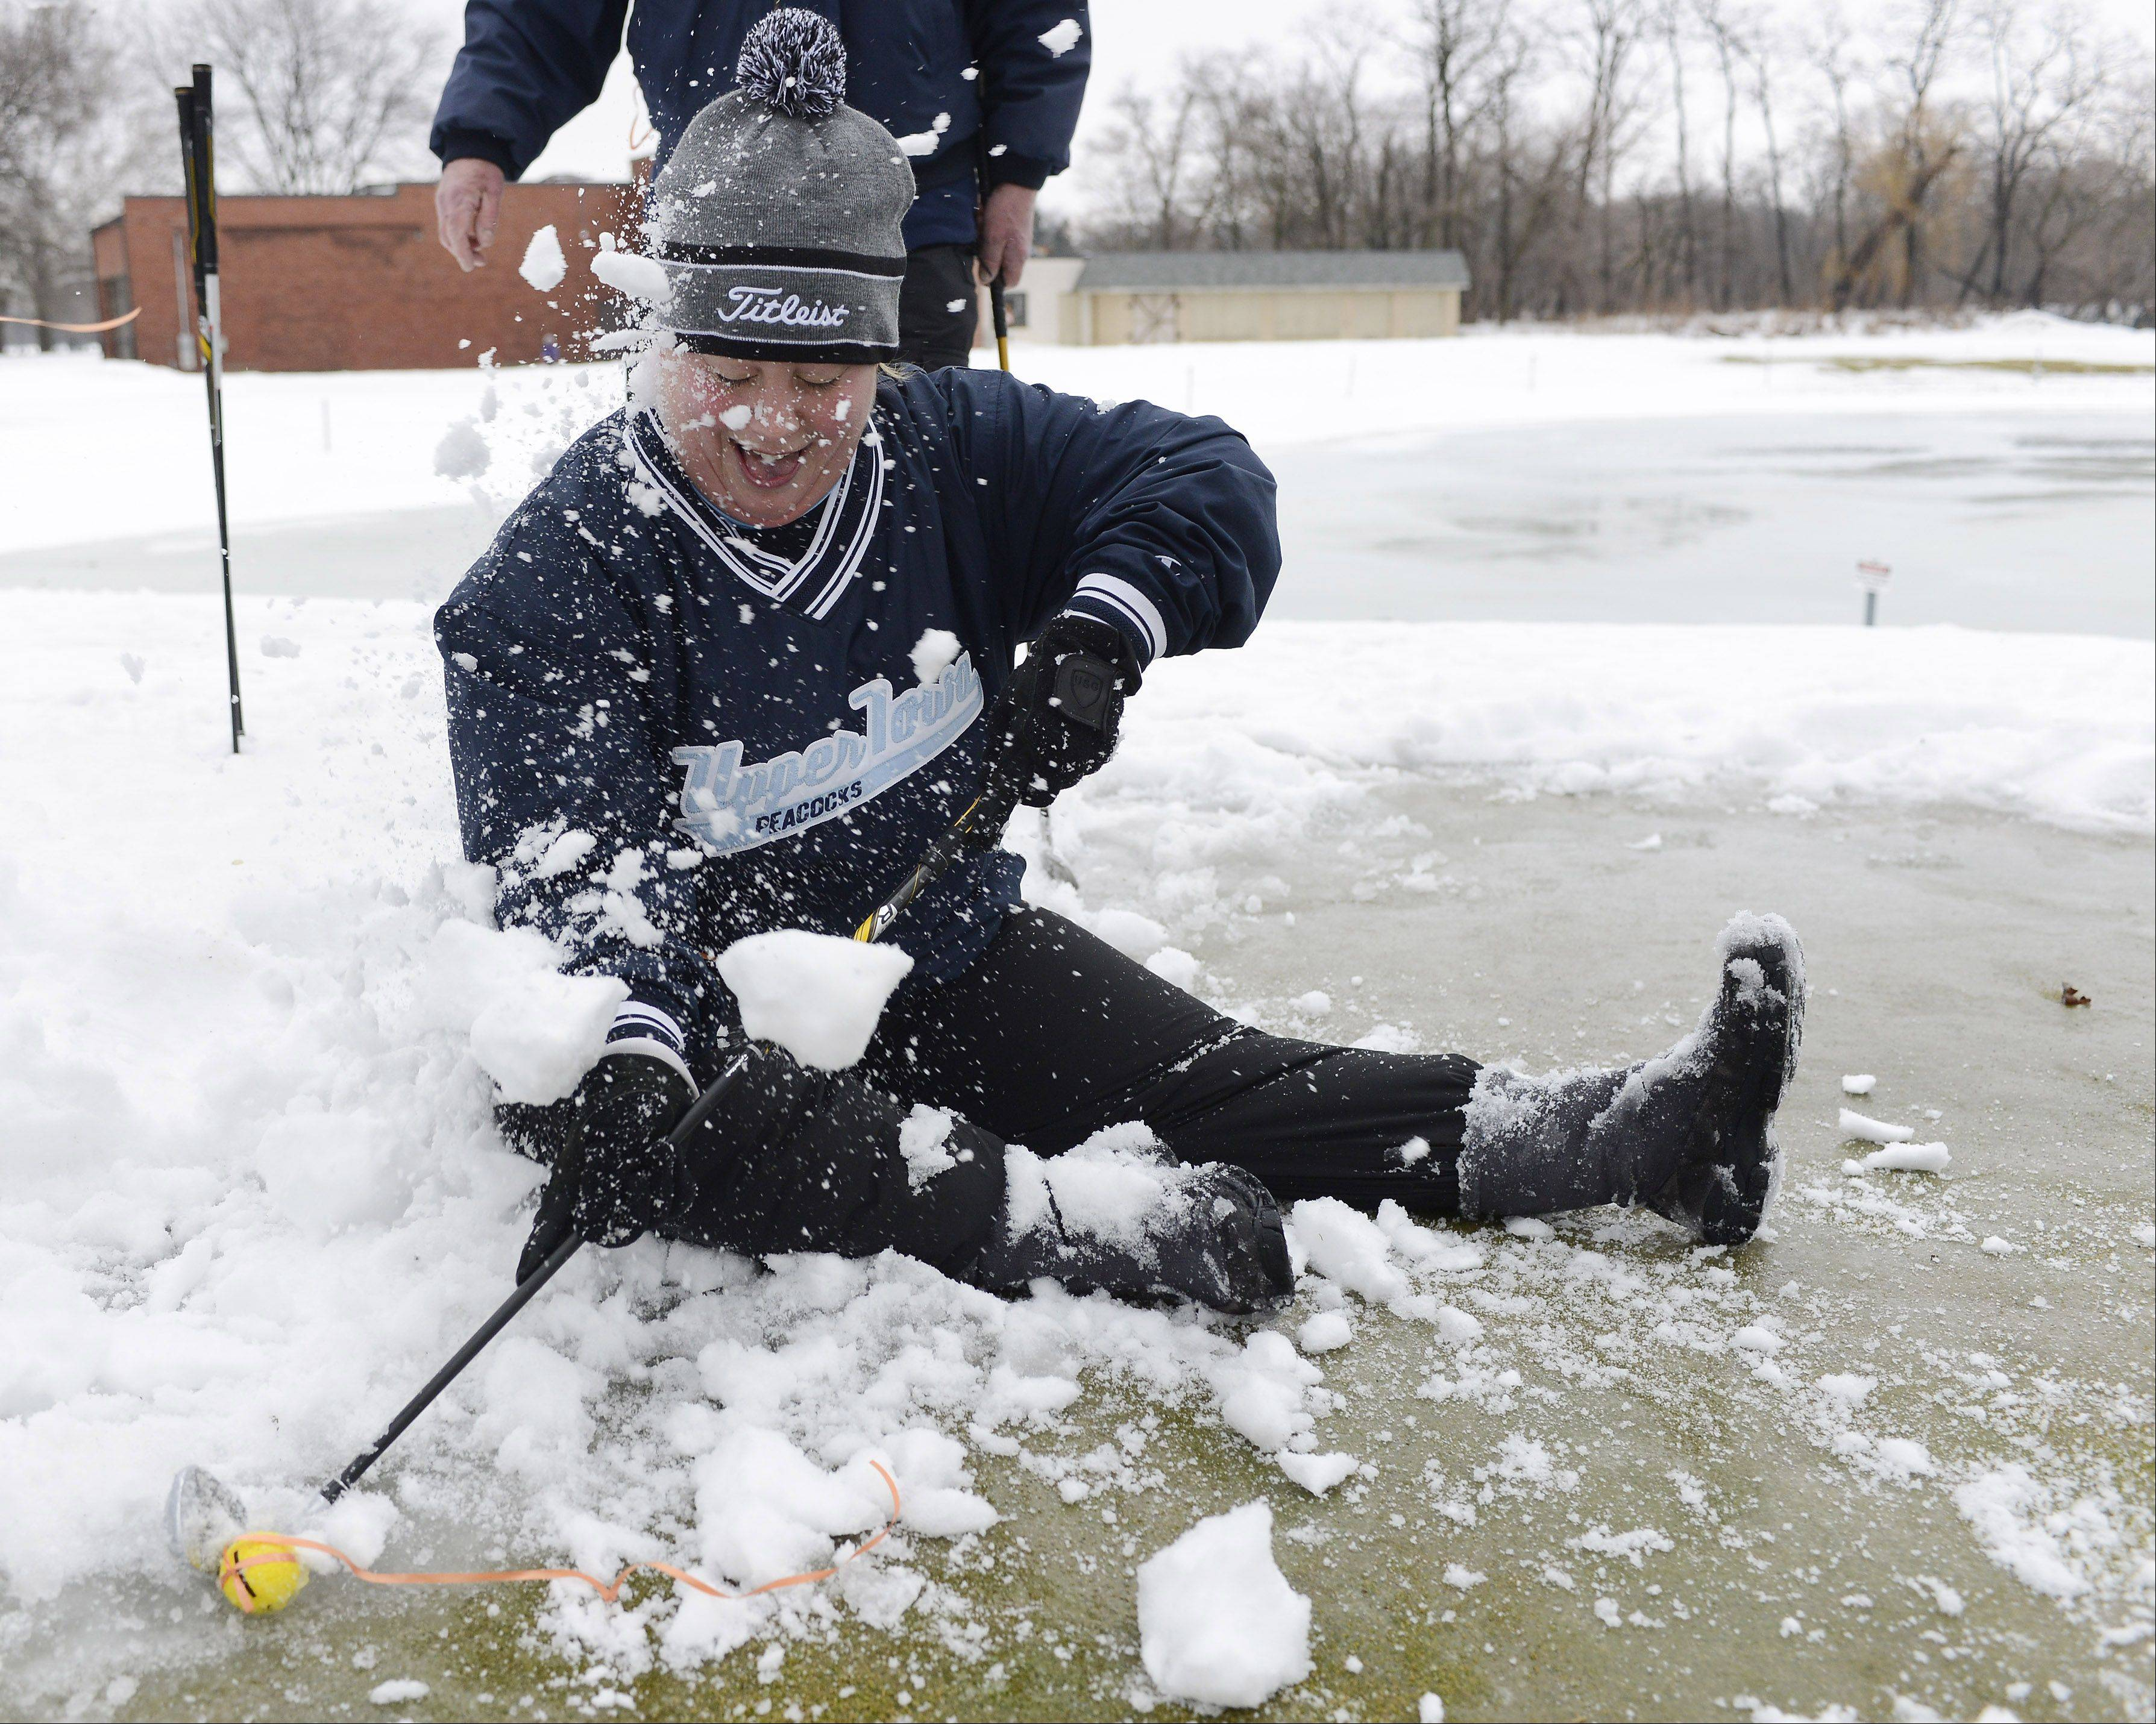 There are often times when a photographer has to make a choice between similar photos during the editing process. While covering the Chili Open at the Golf Center in Des Plaines recently, I photographed Jessica Lang of Mount Prospect just as she had slipped on an icy green while attempting a putt. The frame turned in for the next day's paper showed Lang smiling as, undeterred by her circumstances, she lined up the putt and shot anyway. After missing that attempt however, her teammates razzed her by kicking snow onto her as she gave it another try. This photo was published in the Perspective column in the print edition.